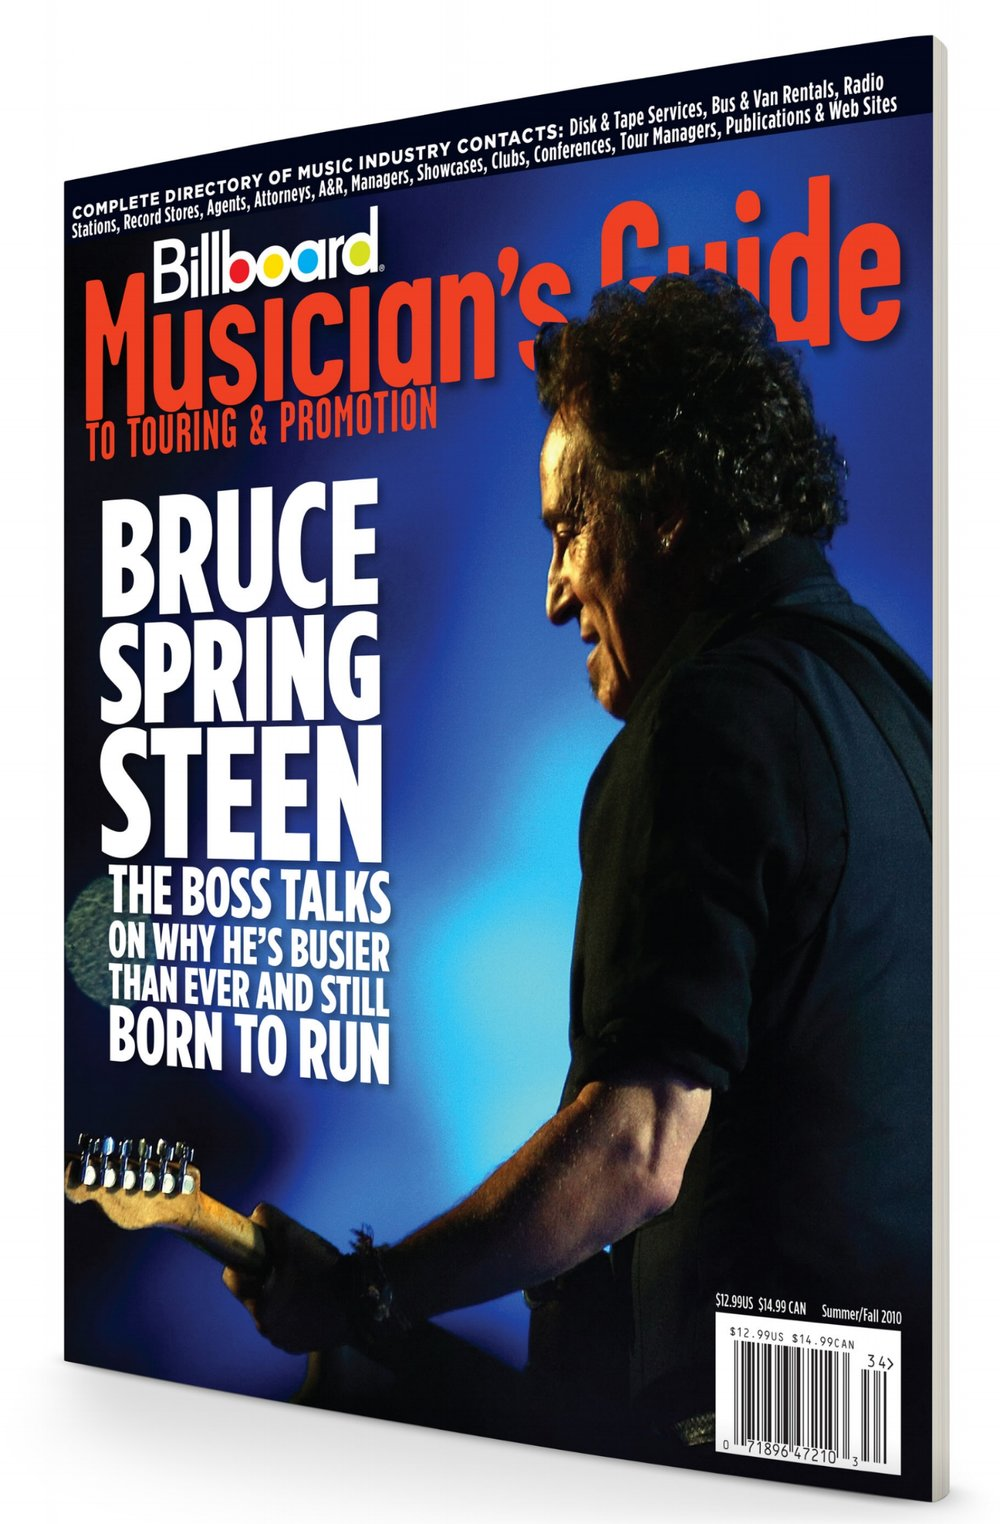 Springsteen Cover 02small.jpg